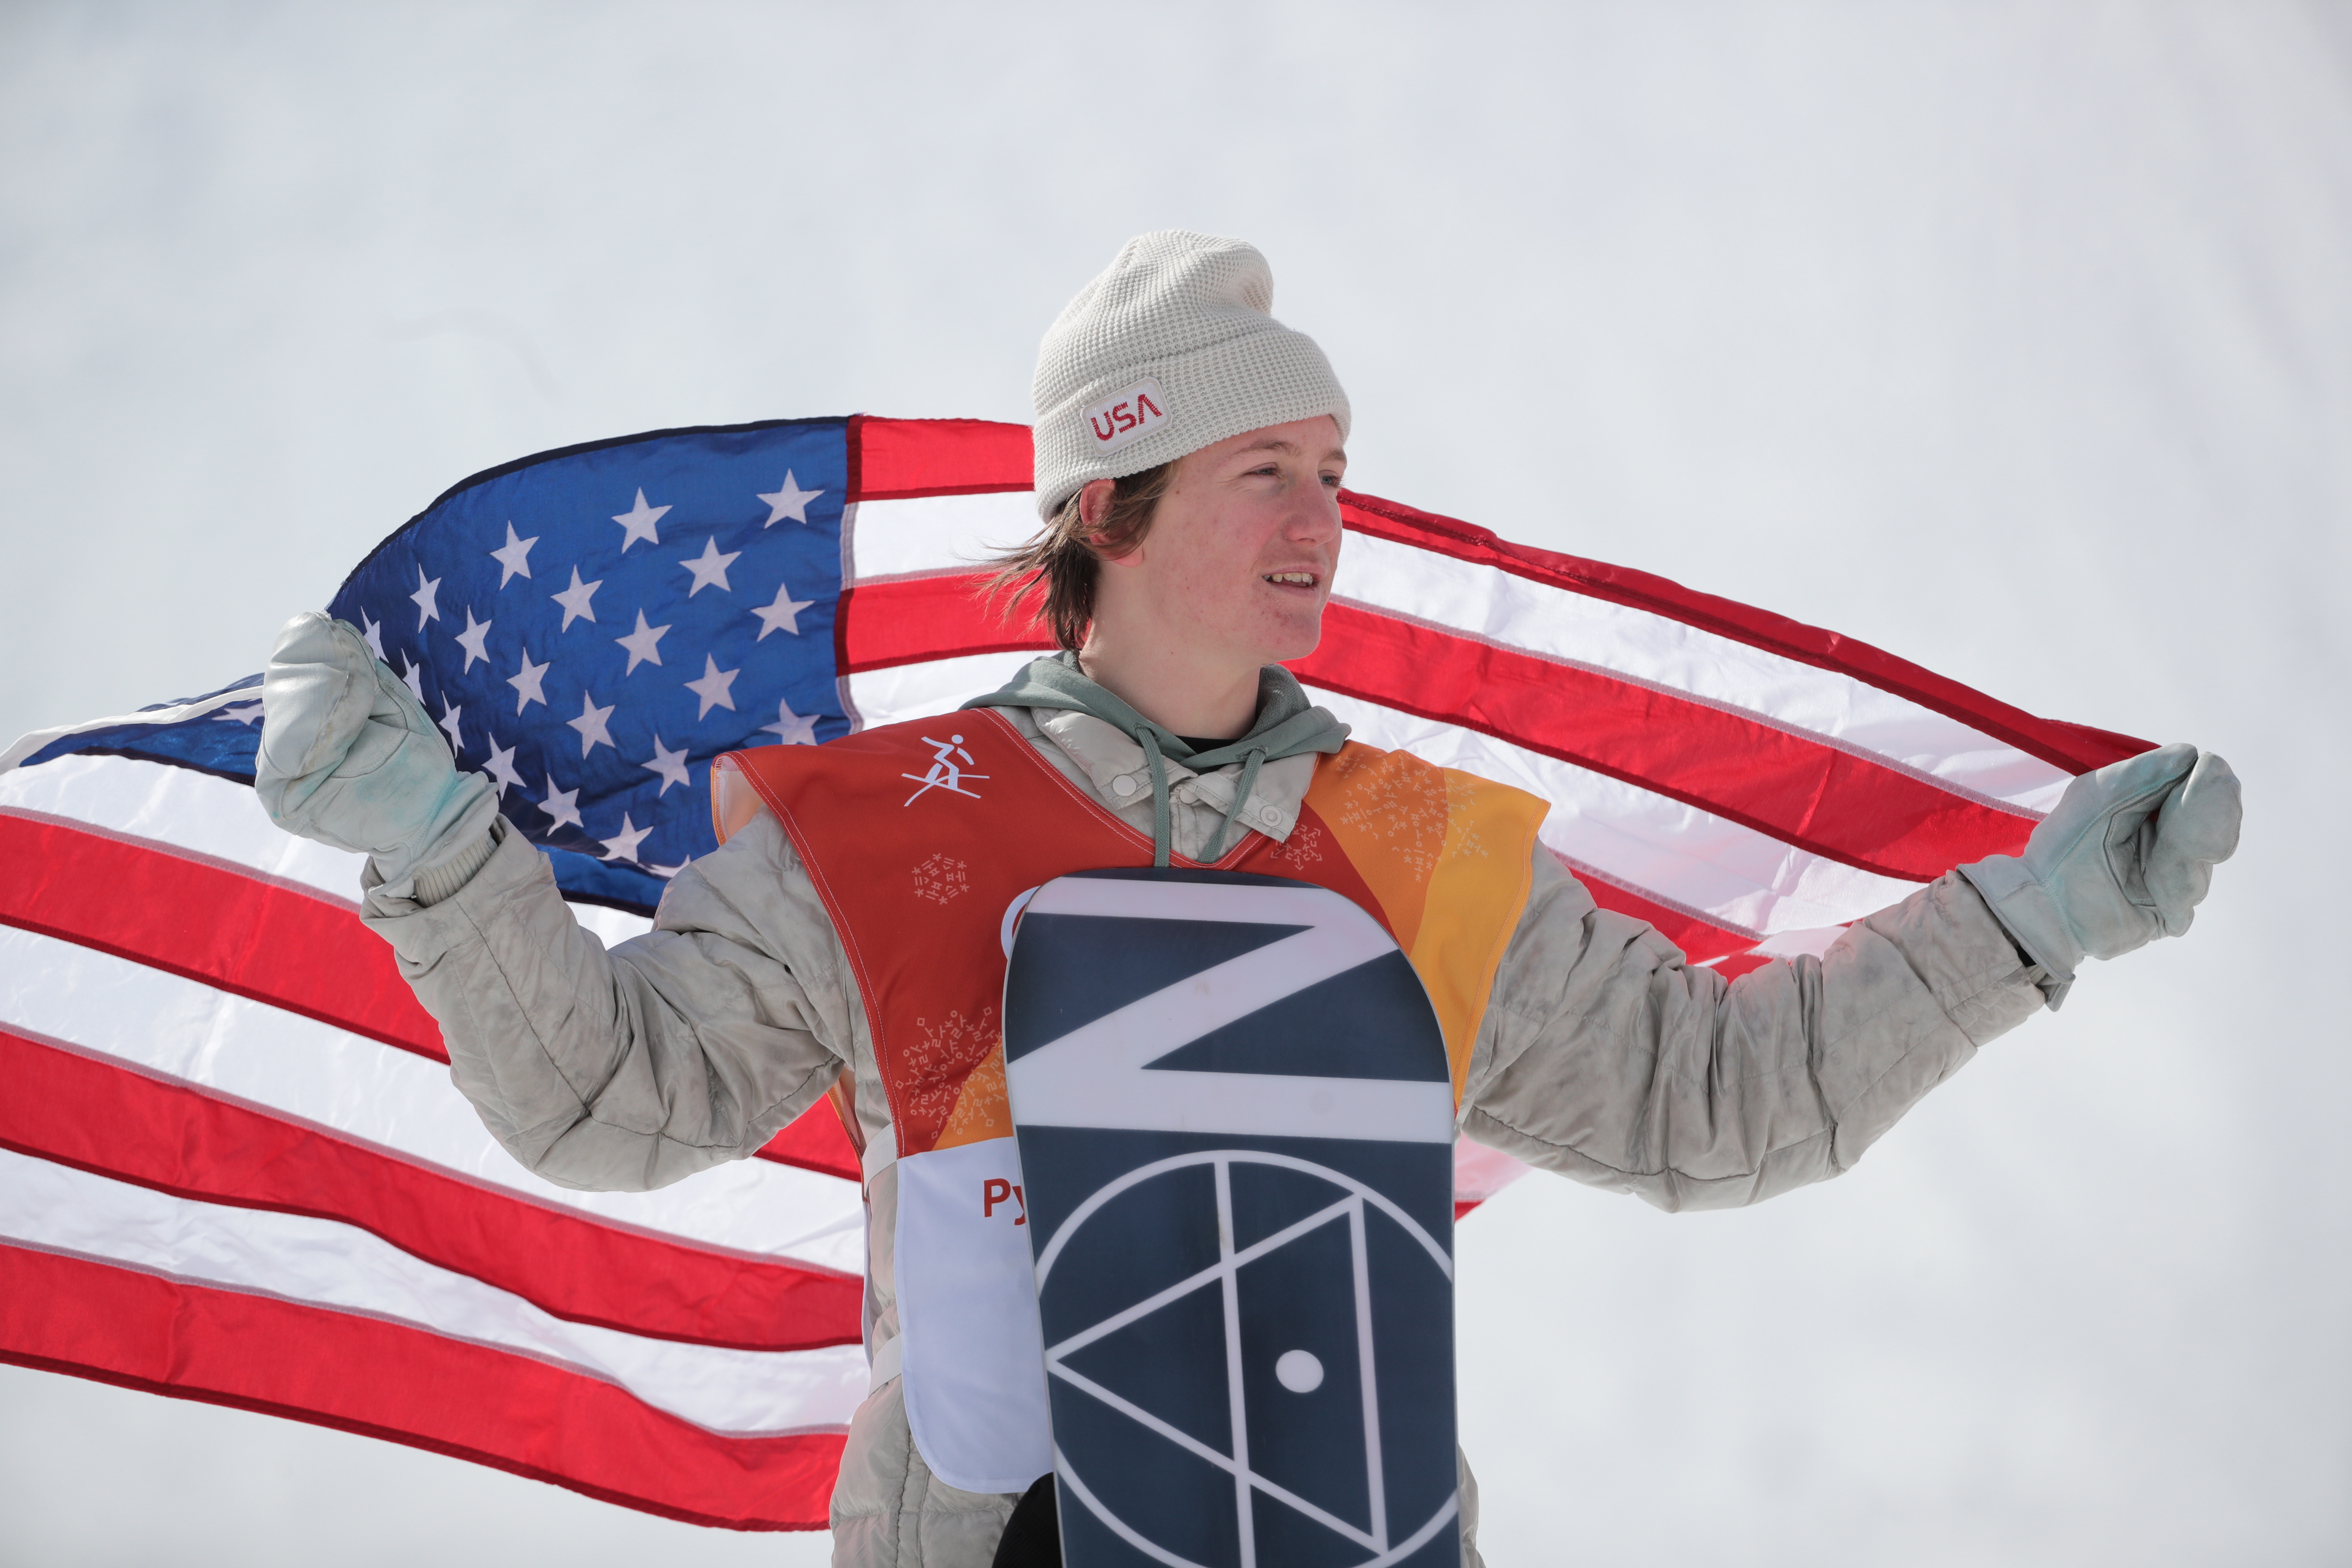 PYEONGCHANG, SOUTH KOREA  FEBRUARY 11, 2018: First-placed Redmond Gerard of the United States waves a US national flag at a flower ceremony for the men's snowboarding slopestyle event at the 2018 Winter Olympic Games, at the Phoenix Snow Park. Sergei Bobylev/TASS (Photo by Sergei BobylevTASS via Getty Images)